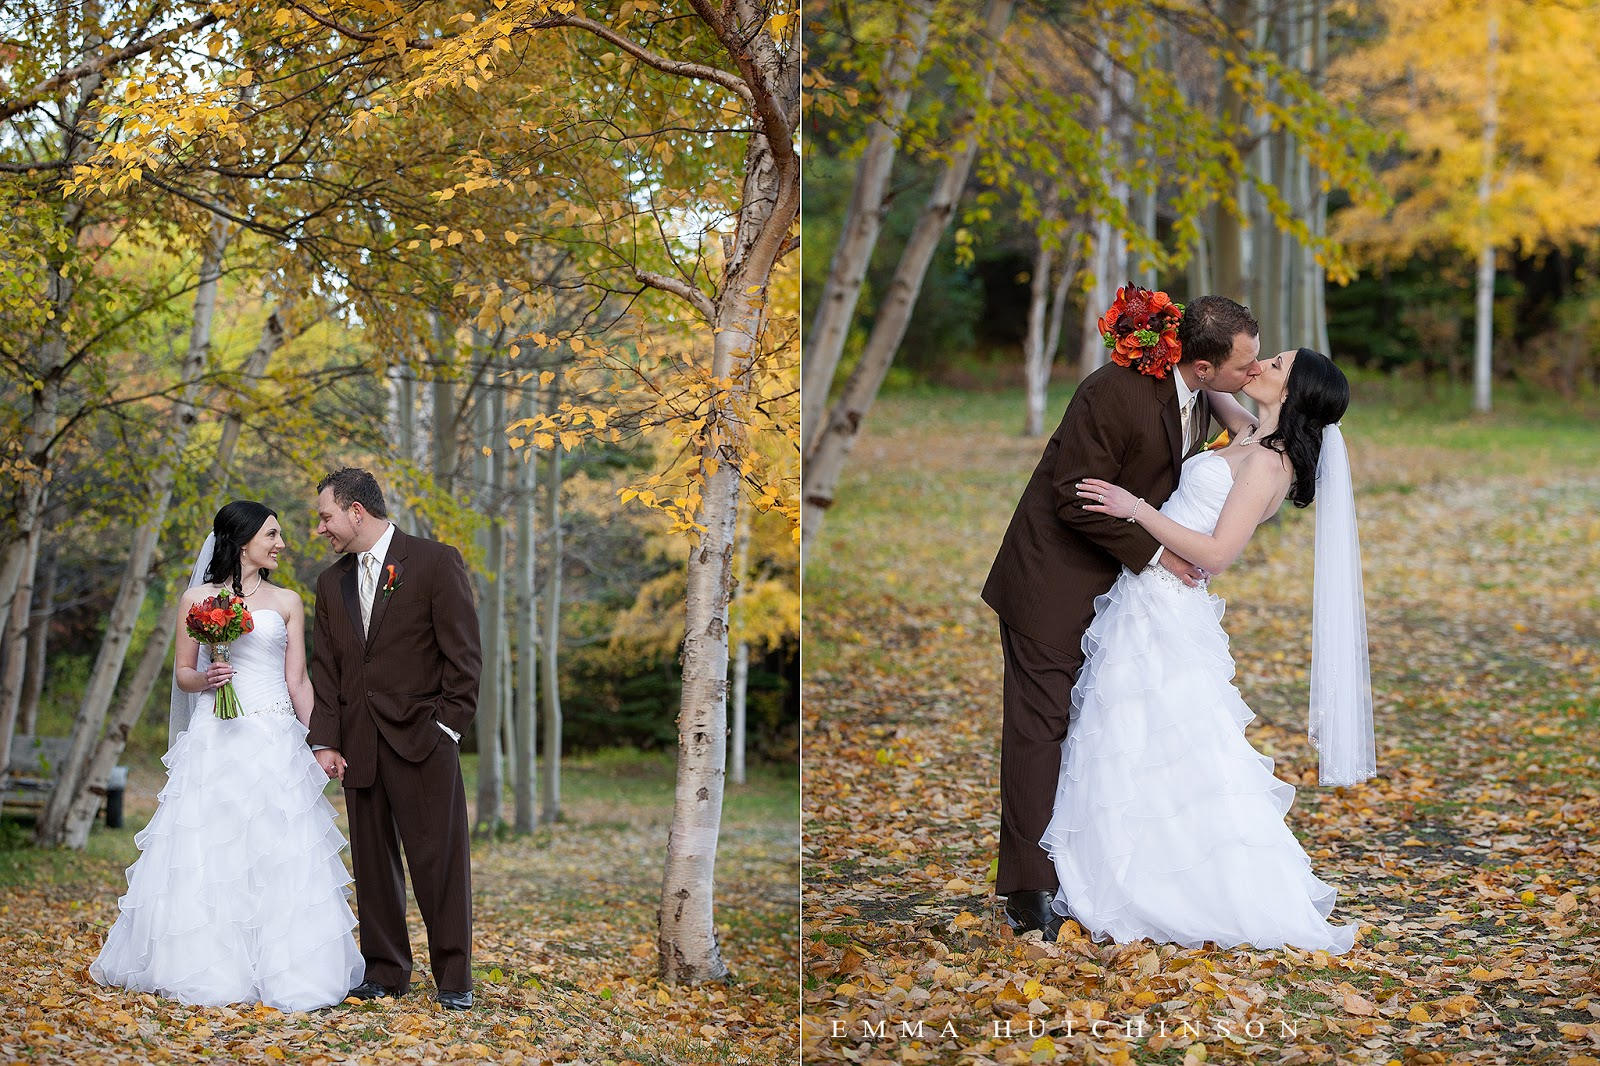 Lewsiporte, Newfoundland - fall wedding photography by Emma Hutchinson